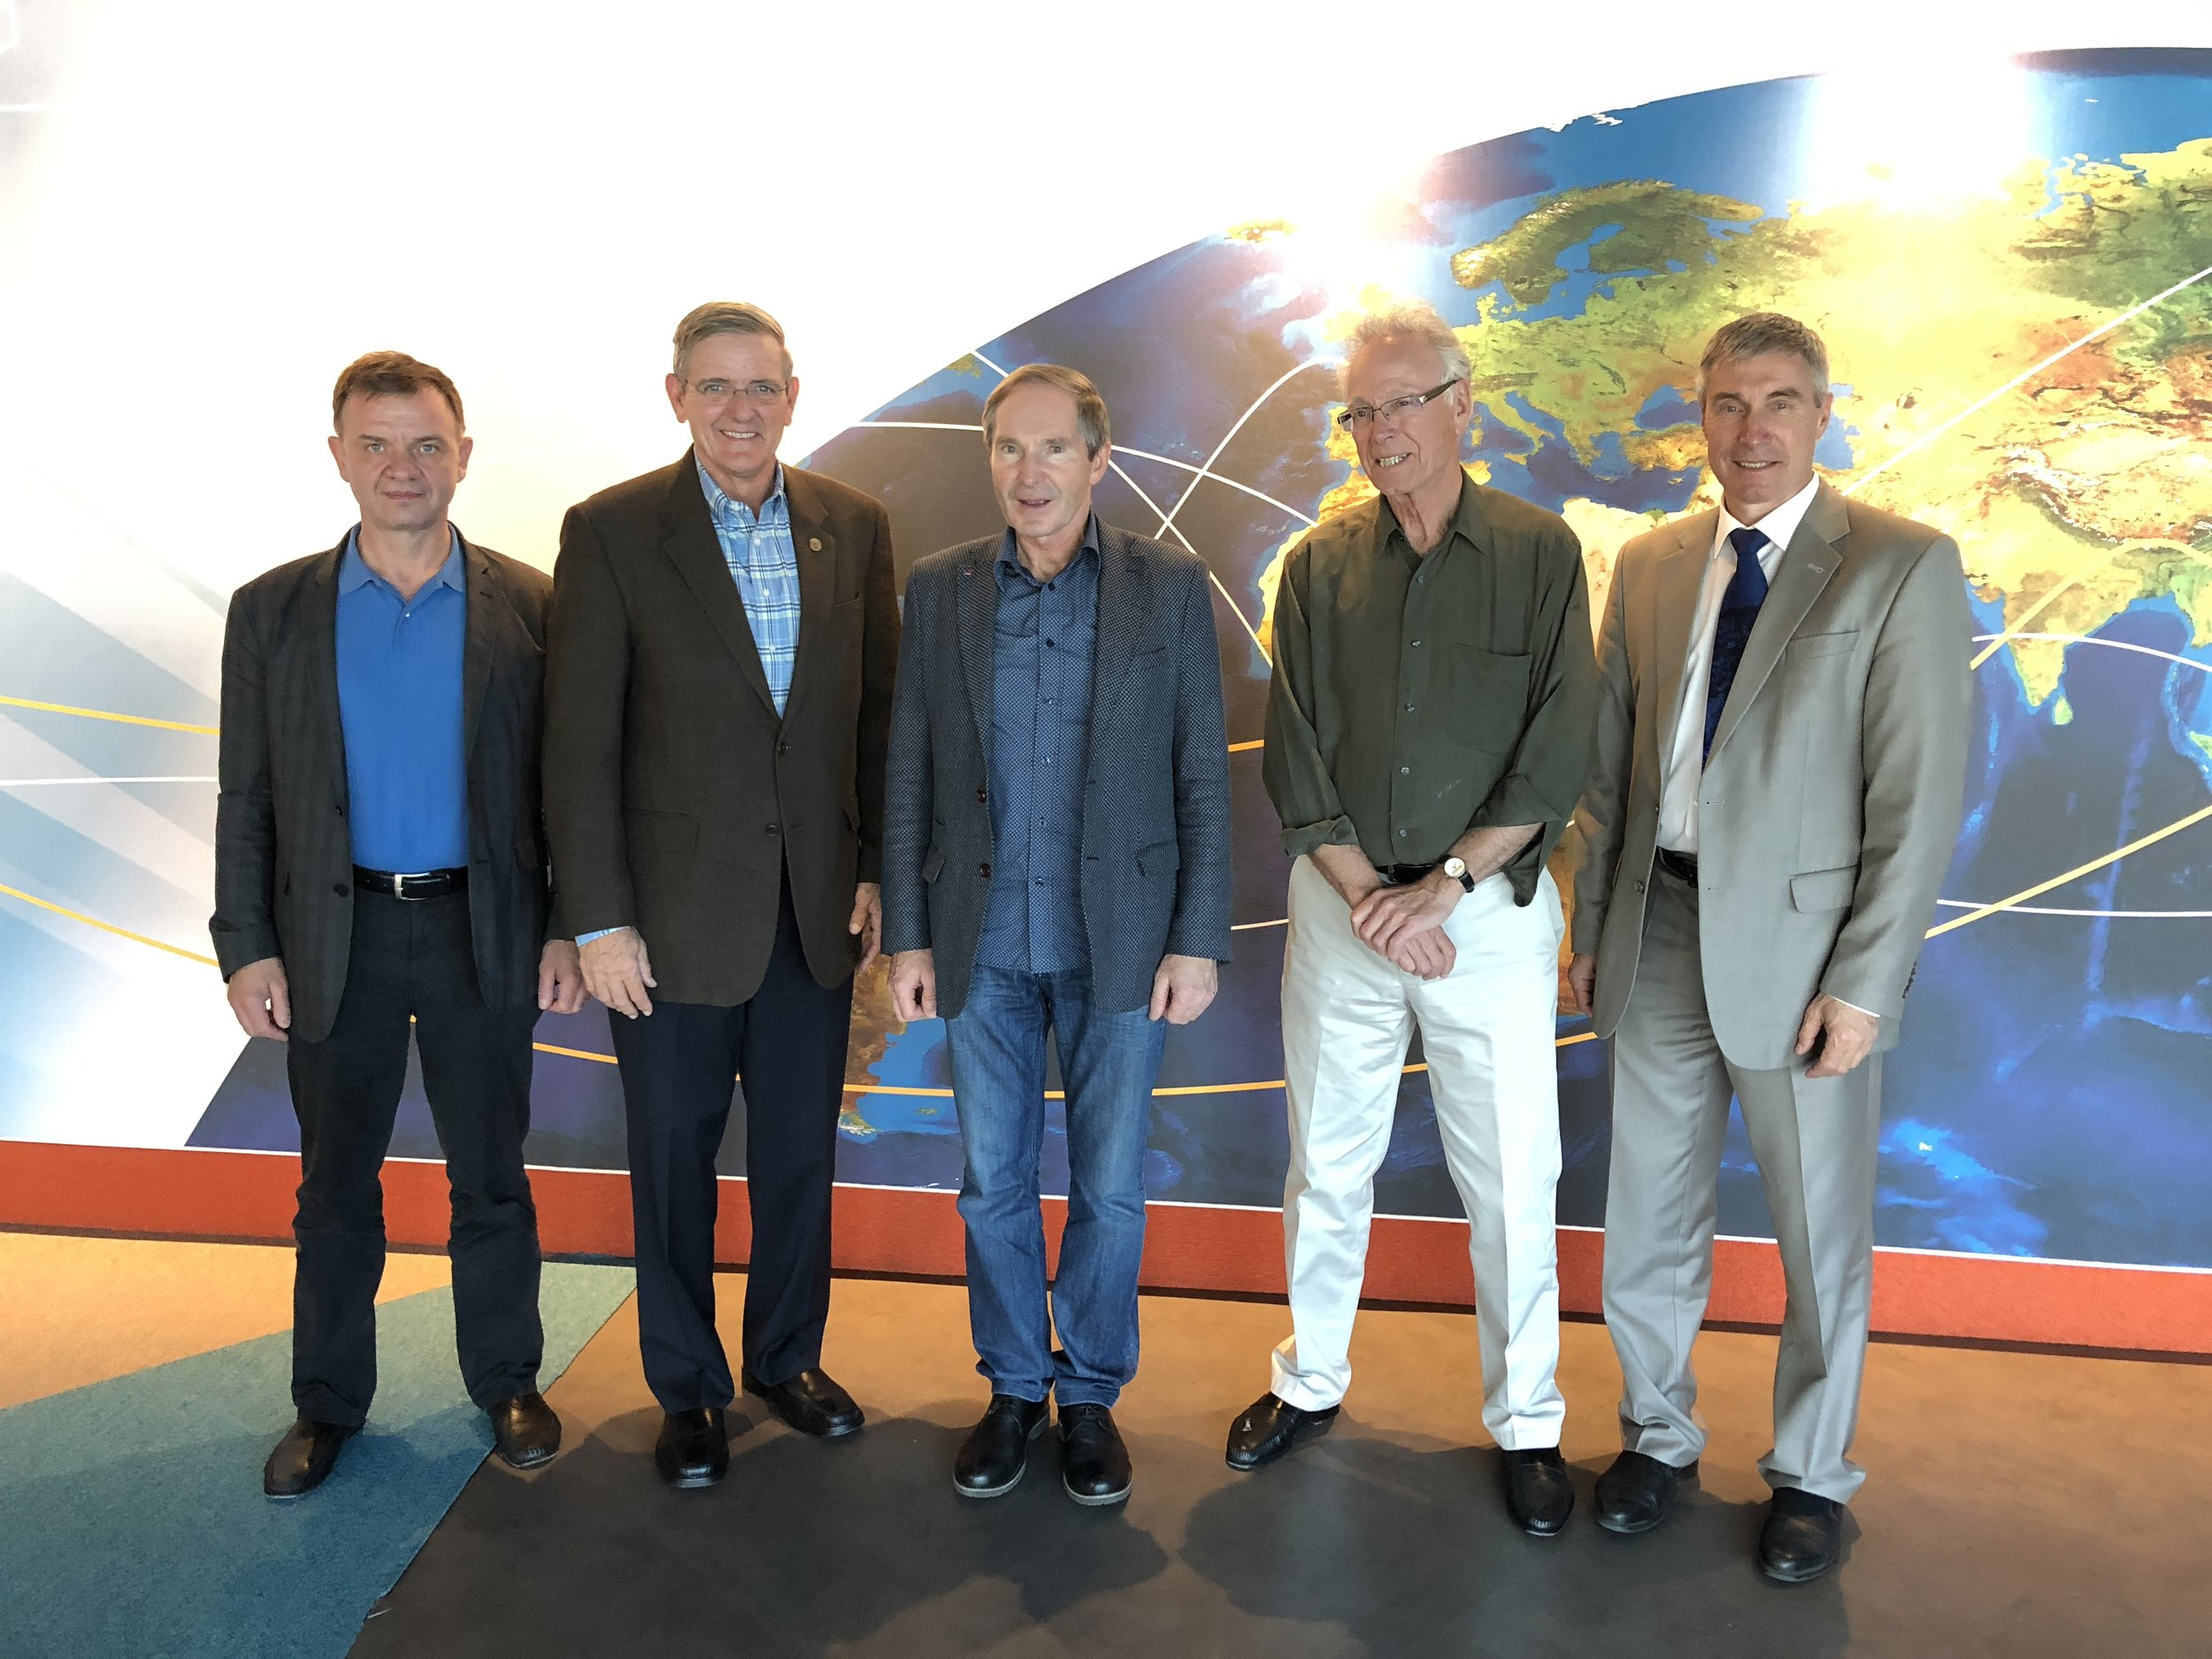 International Space Station veterans Yuri Gidzenko, Bill McArthur, Valeri Tokarev, Greg Olsen and Sergei Krikalev at the 30th Association of Space Explorers meeting at Cite de l'Espace, Toulouse, France.